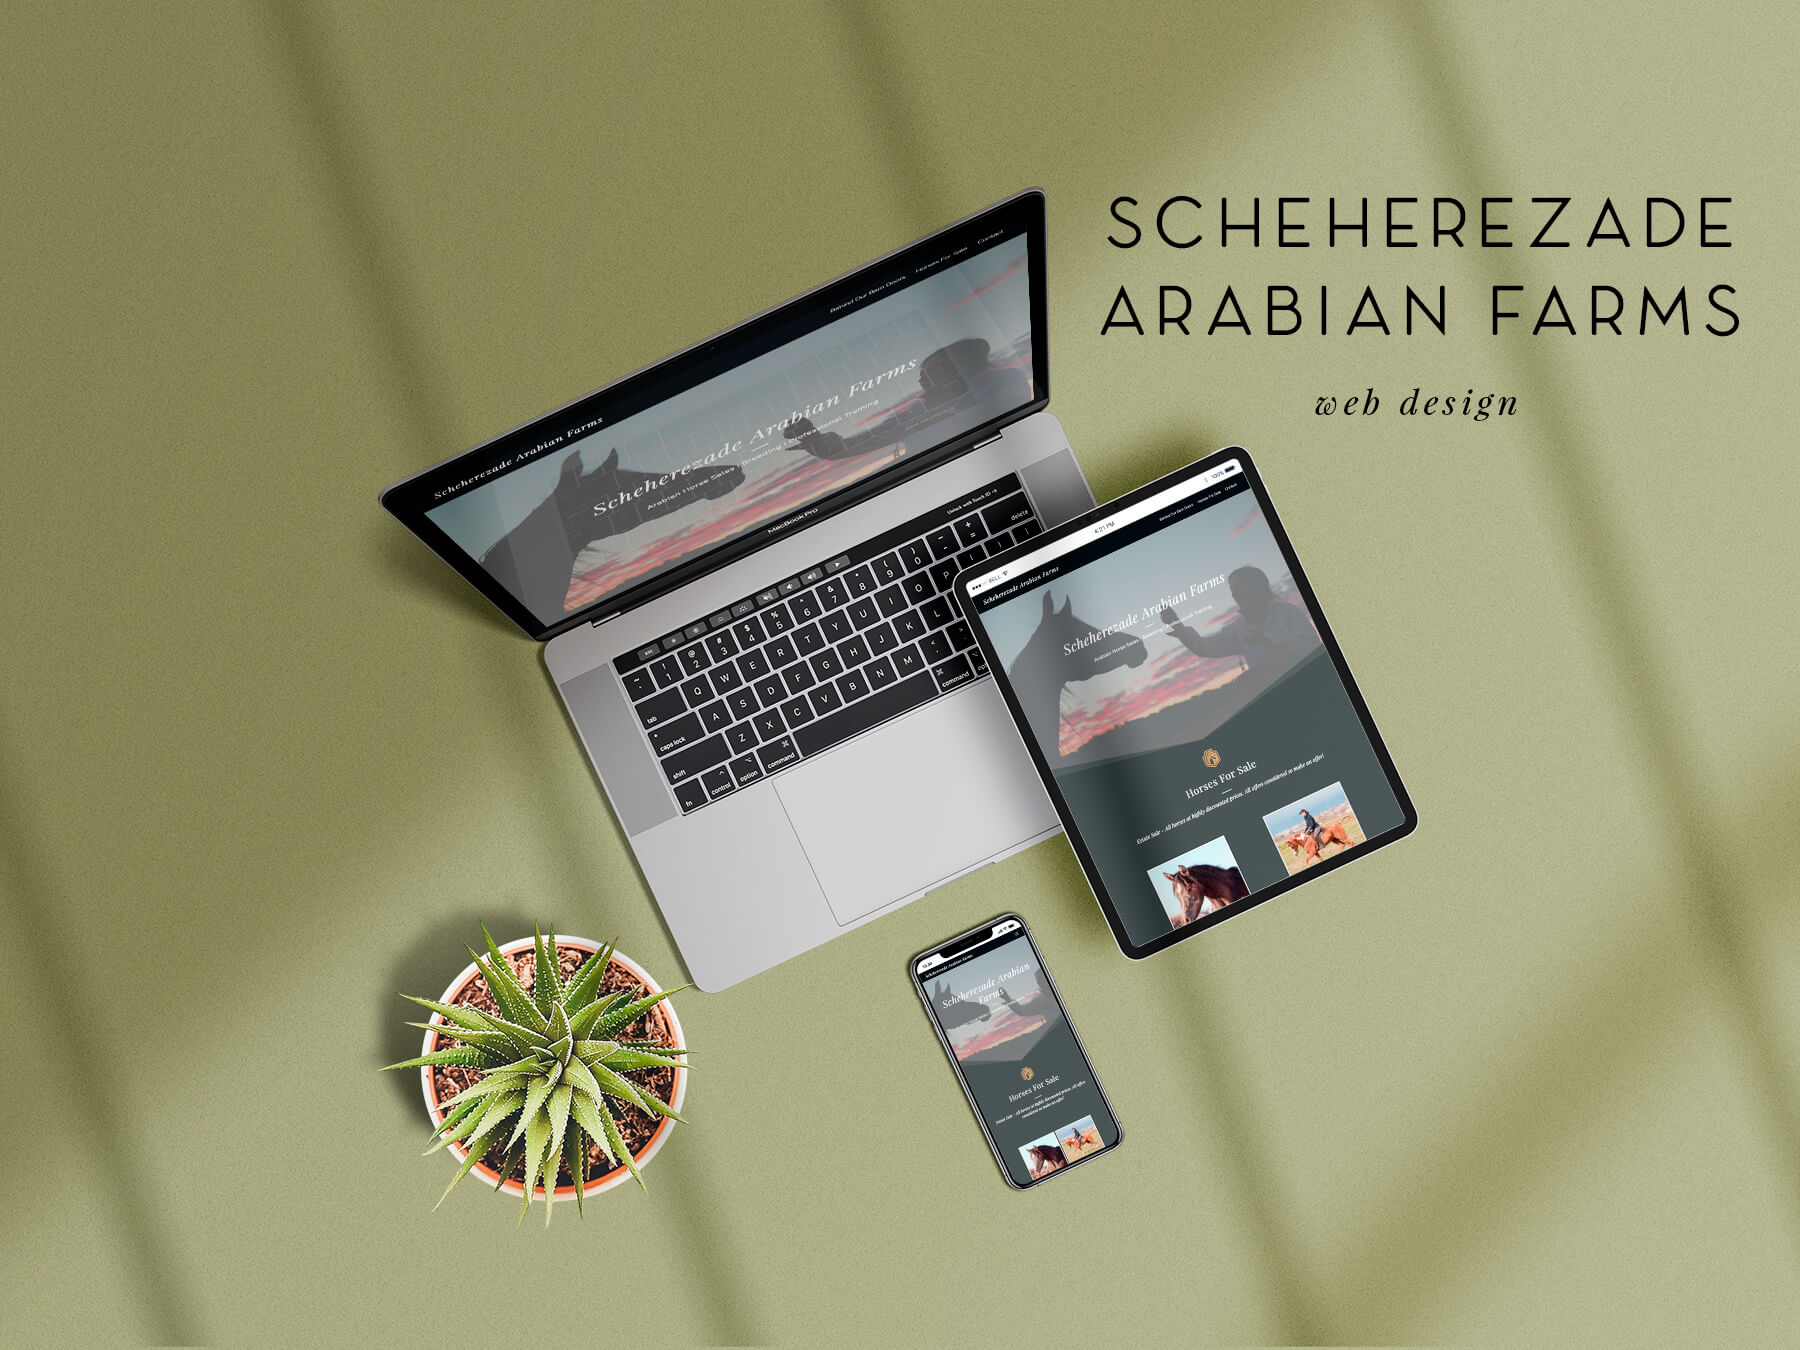 ns-design-scheherezade-arabian-farms-web-design